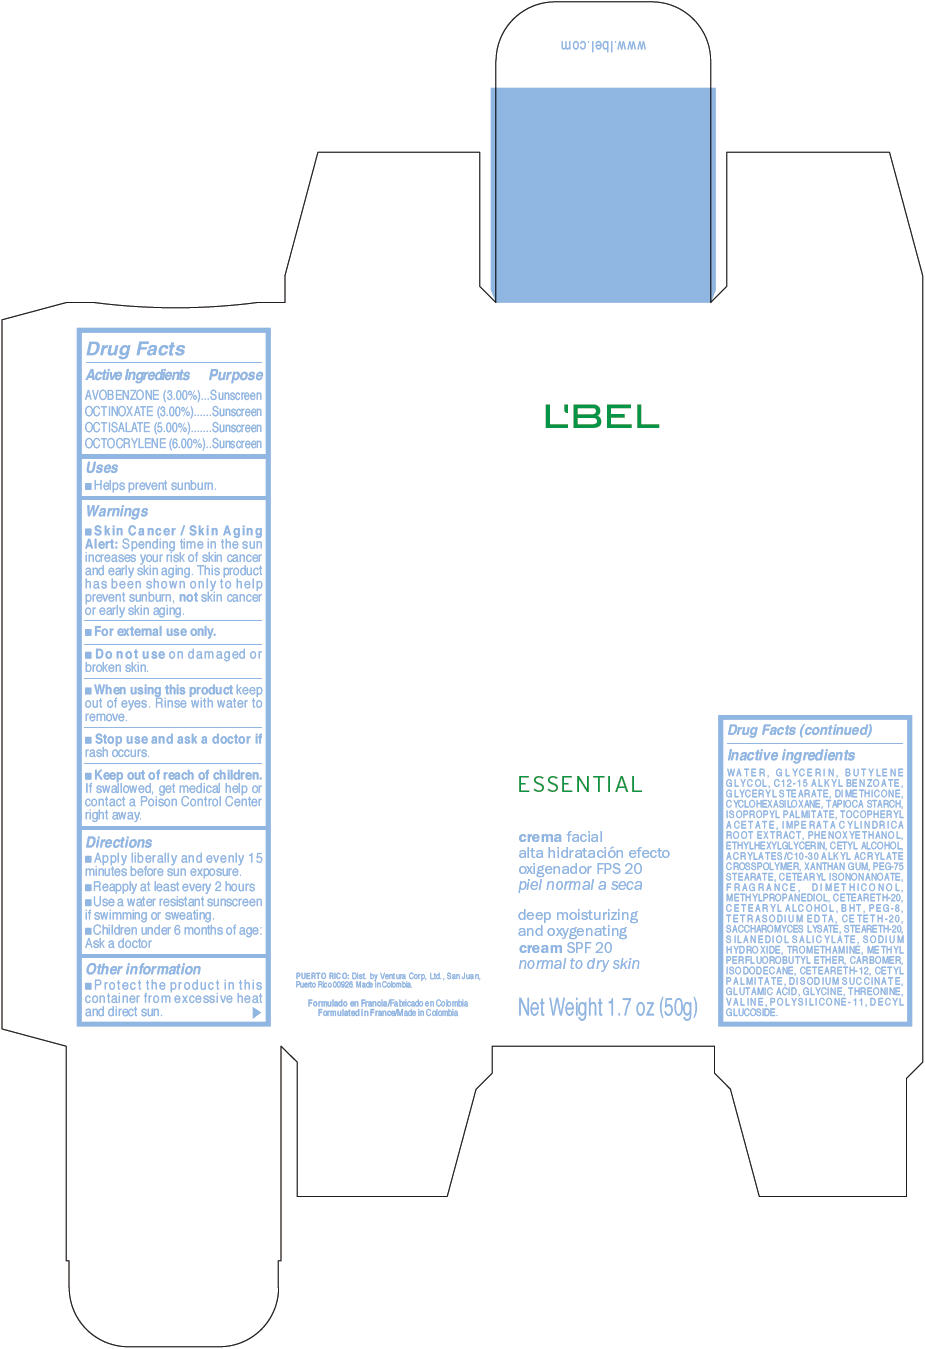 Lbel Essential Moisturizing And Oxygenating Spf 20 Normal To Dry Skin (Avobenzone, Octinoxate, Octisalate, And Octocrylene) Cream [Ventura Corporation Ltd]